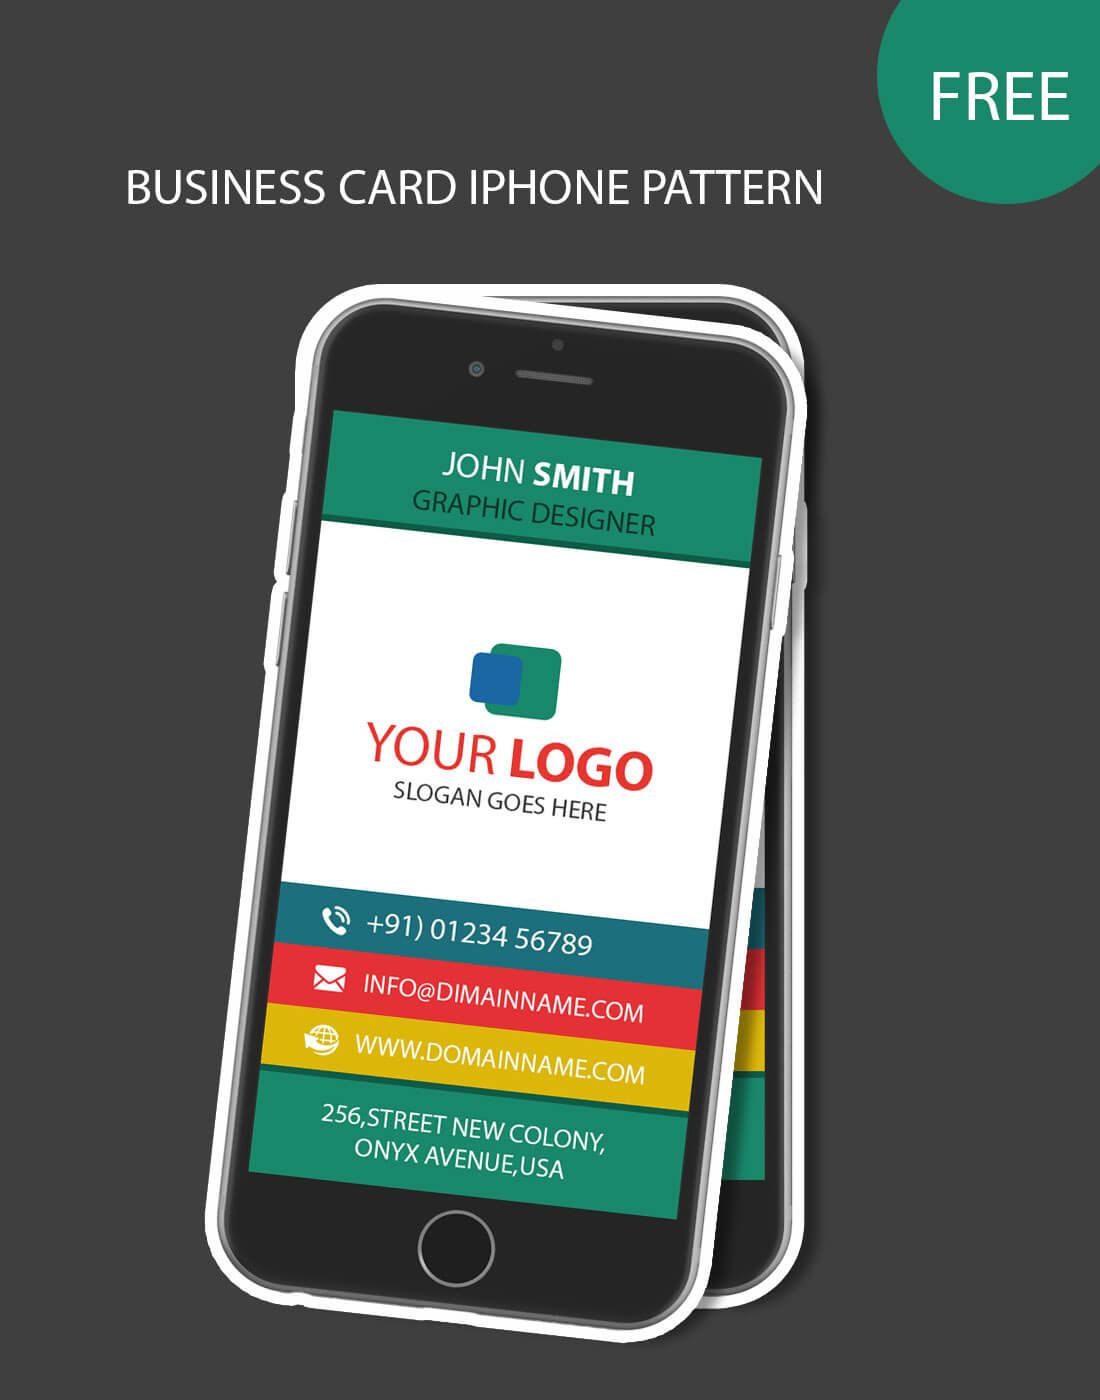 007 Template Ideas Iphone Pattern Business Archaicawful Card With Iphone Business Card Template